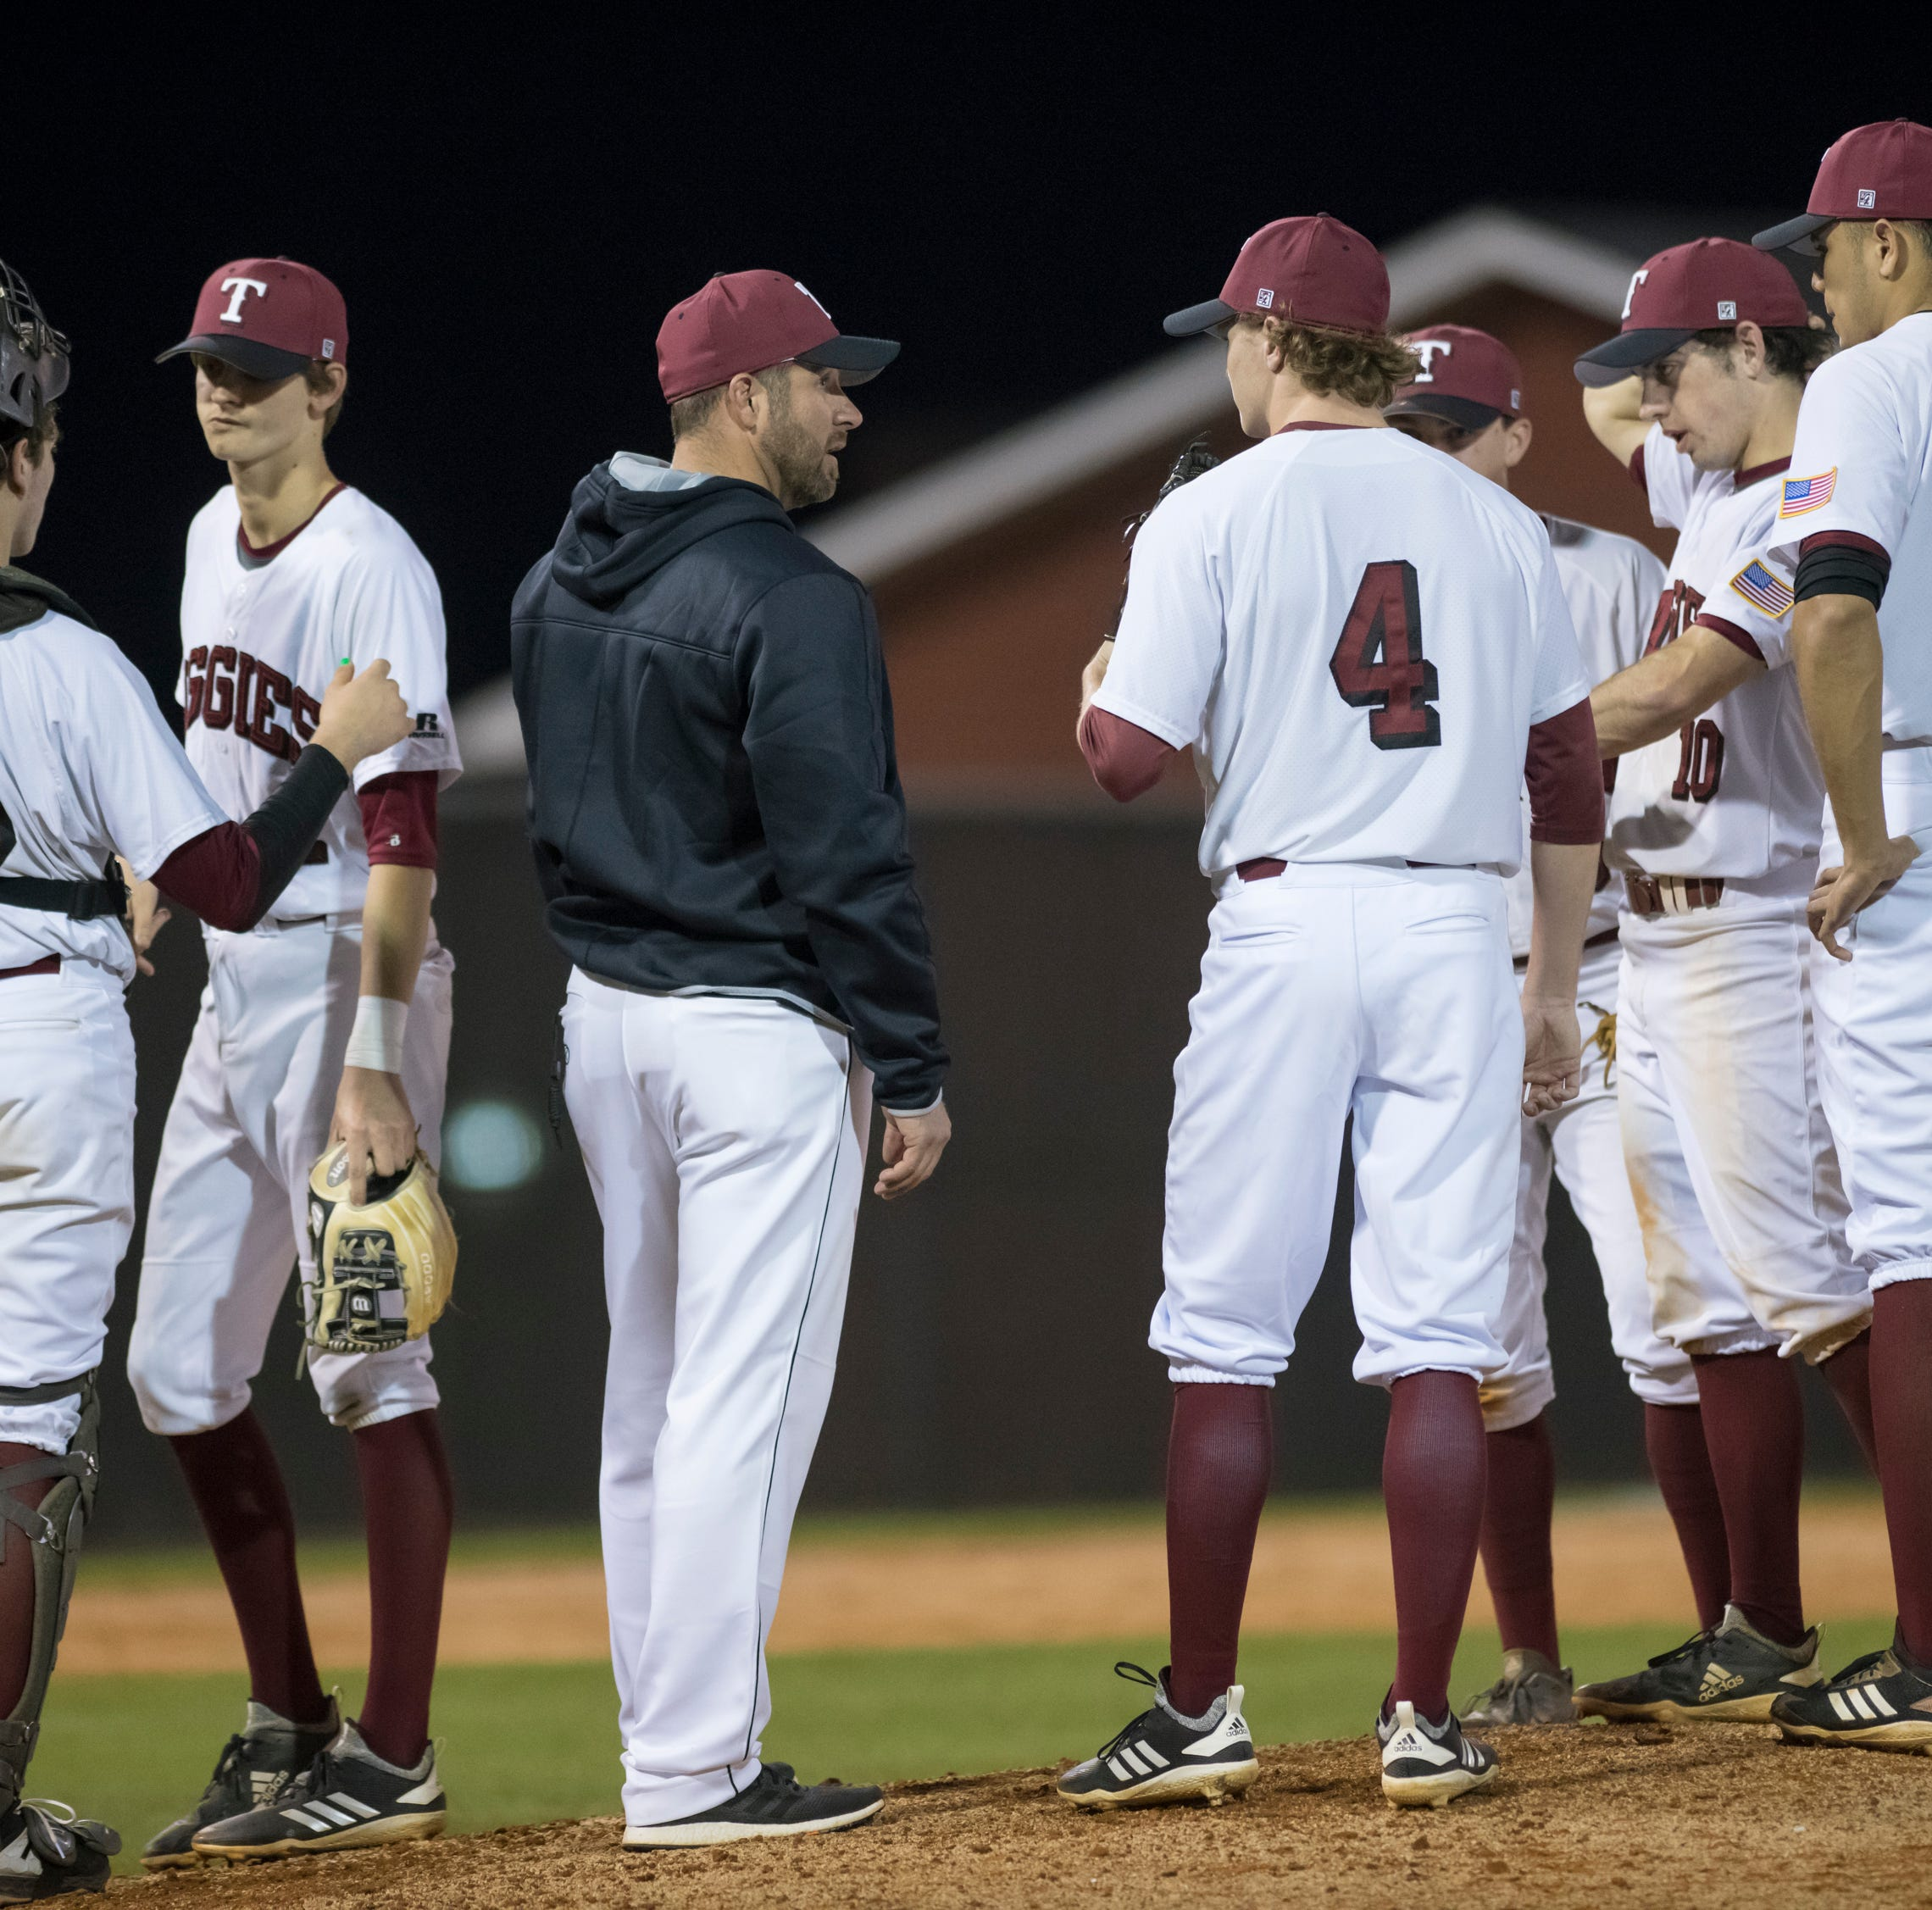 PNJ Baseball Leaderboard: Aggie Classic set to open this week